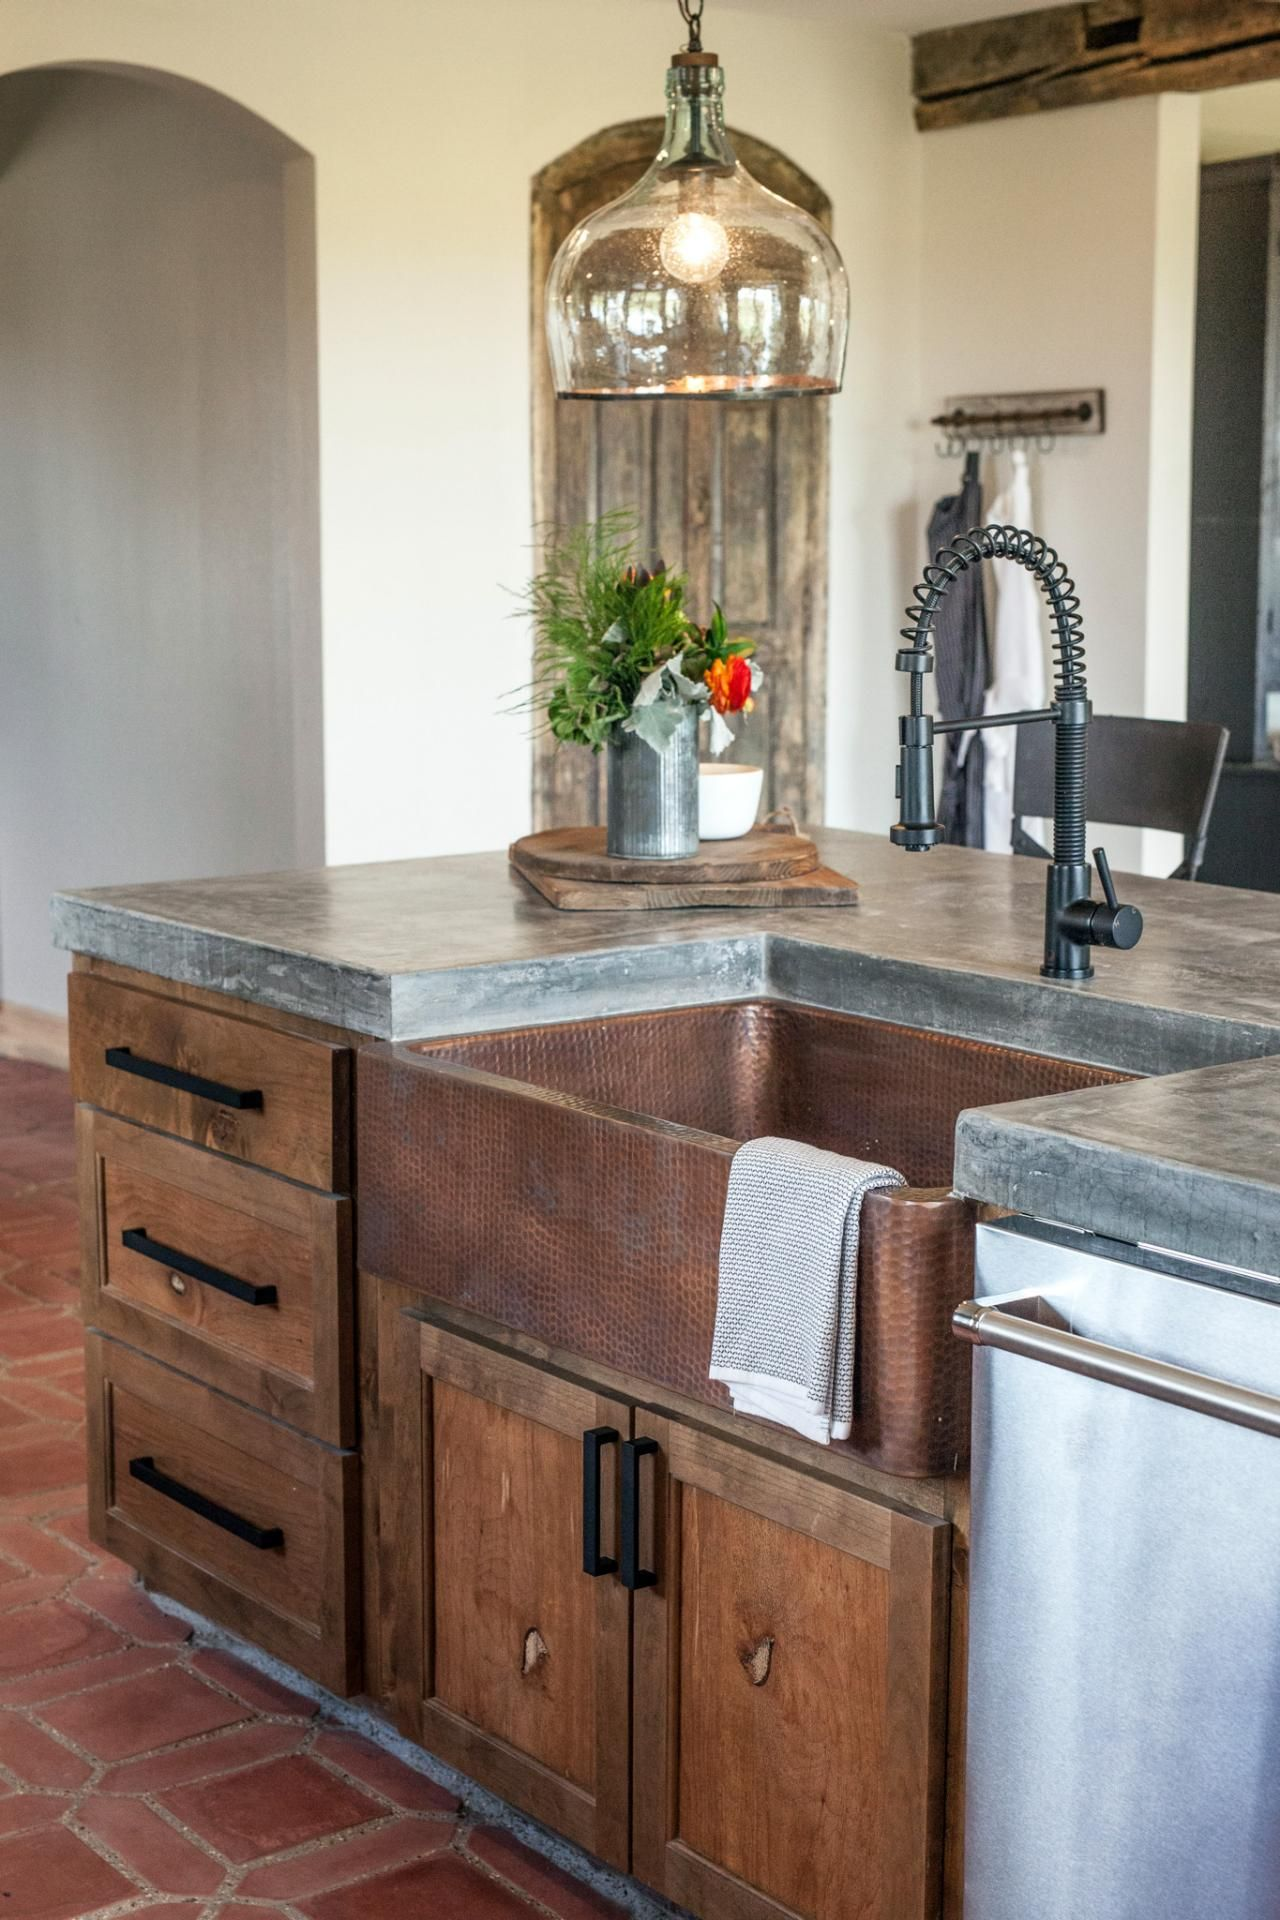 Decor with kitchen ideas waterfall countertop wood accent wall - White With Character I Love The Wood Wall Farm Sink Check White Marble Quartz Countertops Check Wood Floors Check Stainless Appliances